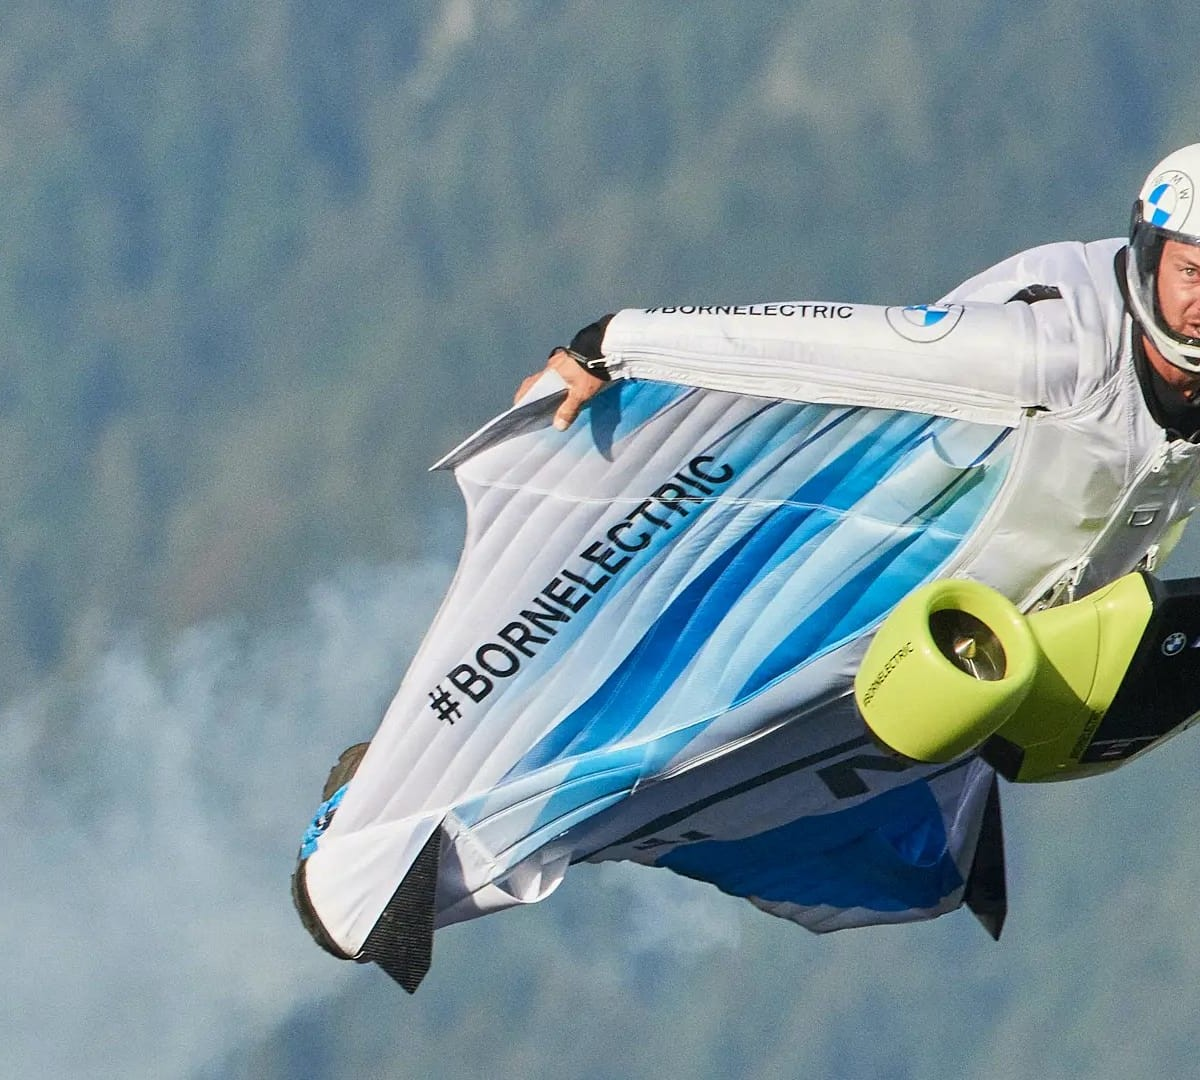 BMW Electrified Wingsuit lets you soar through the sky at 186 mph